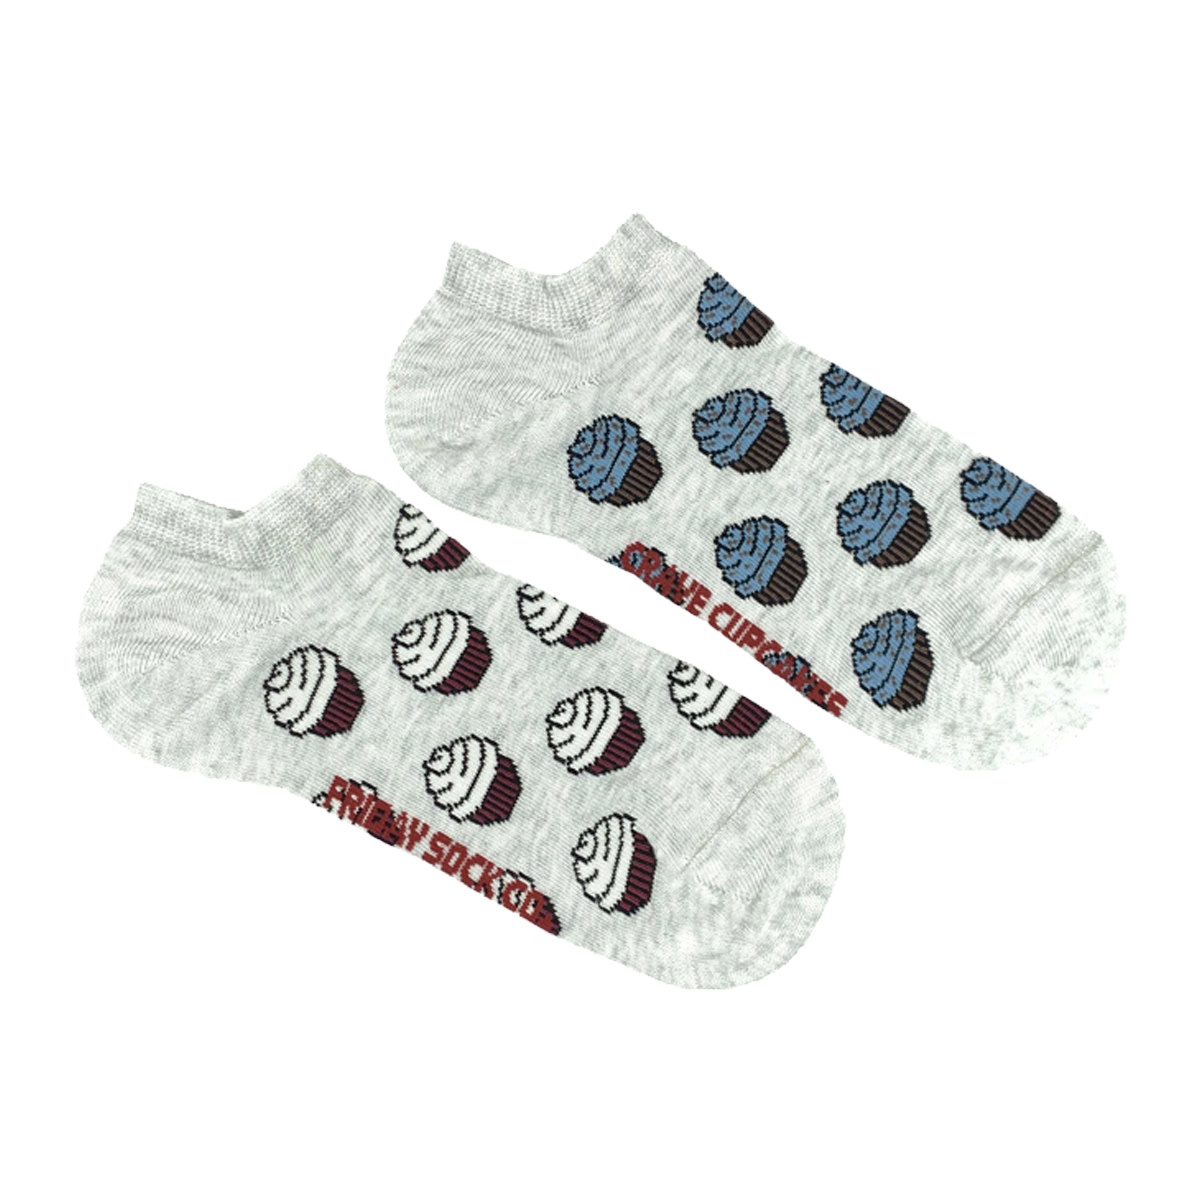 Friday Sock Co. Friday Sock Co. Women's Grey Crave Cupcakes Ankle W 5 - 10 (M - 4 - 8)